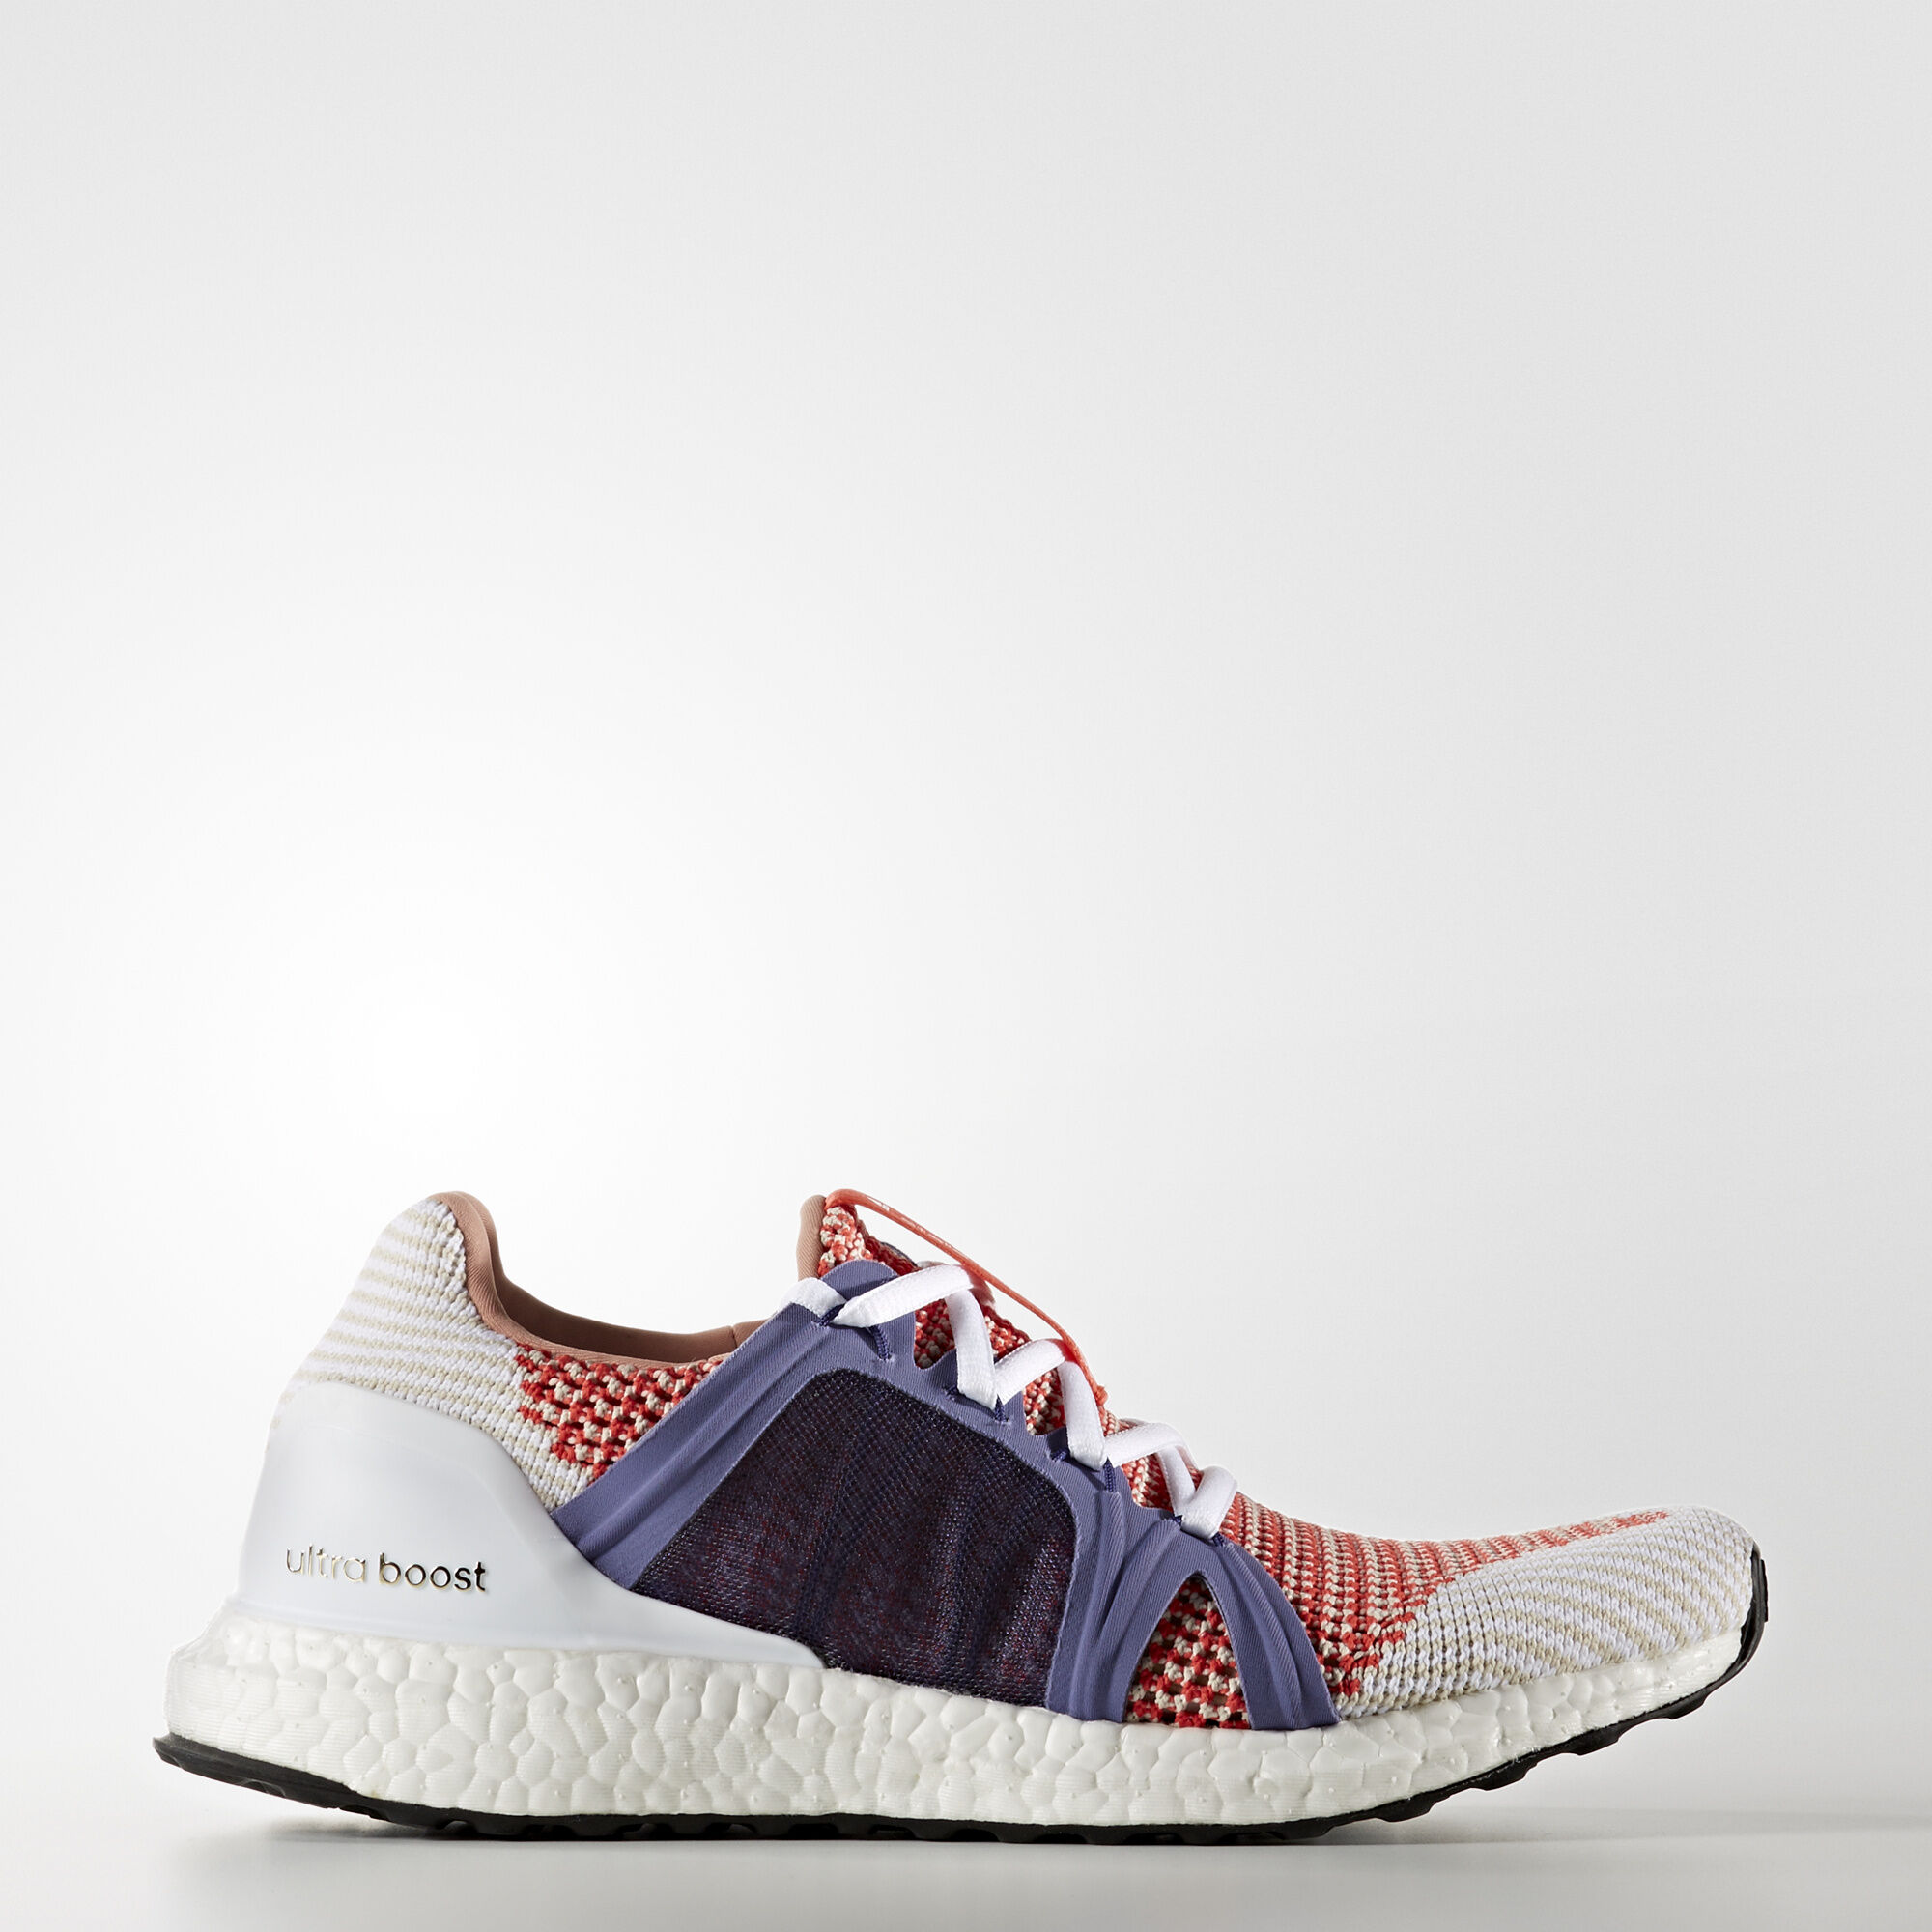 Adidas Ultra Boost Discount Code